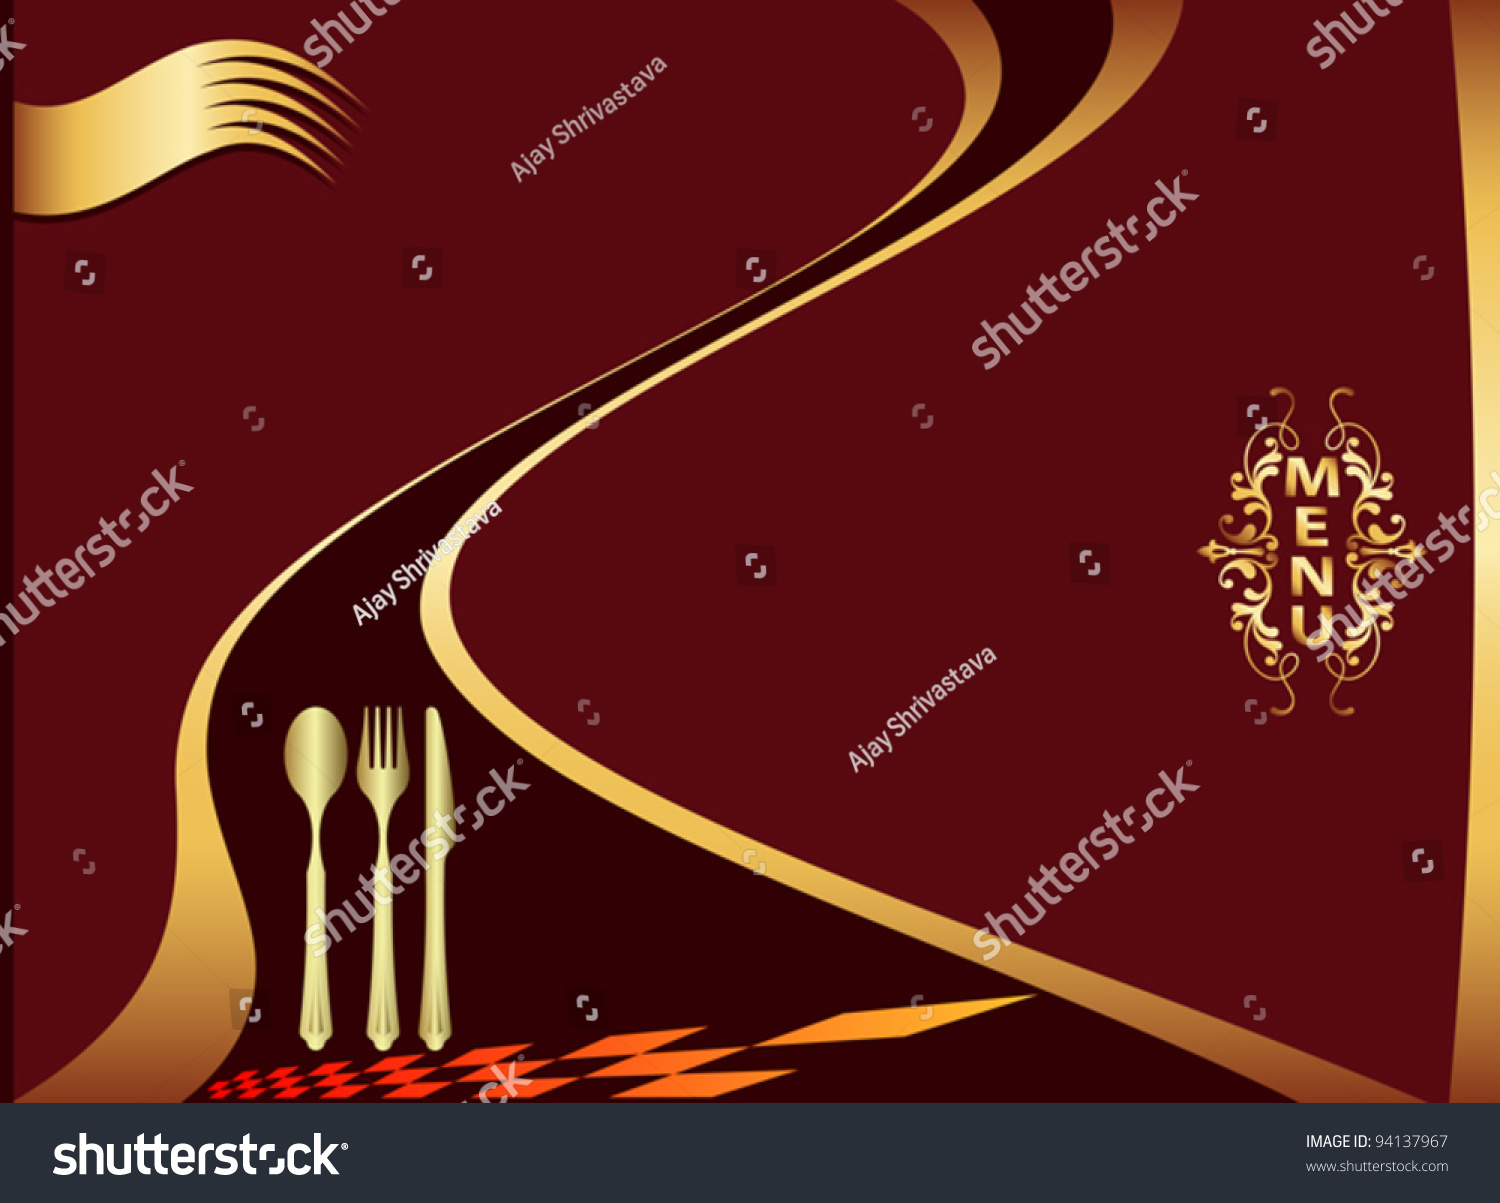 Hotel menu design template stock vector illustration for Frequent diner card template